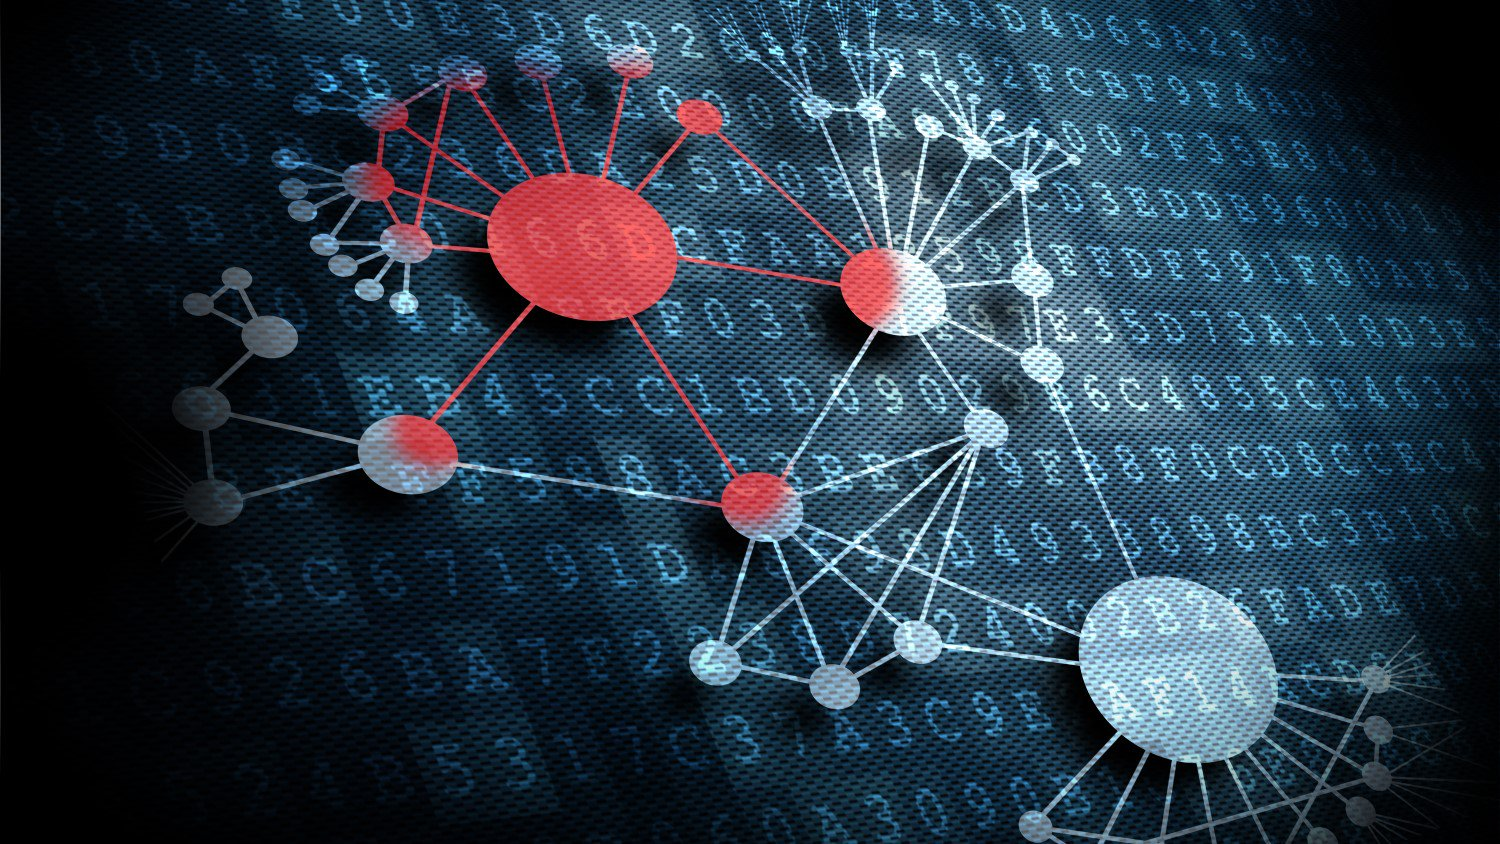 New Crypto Mining Malware Targeting Corporate Networks, Says Kaspersky